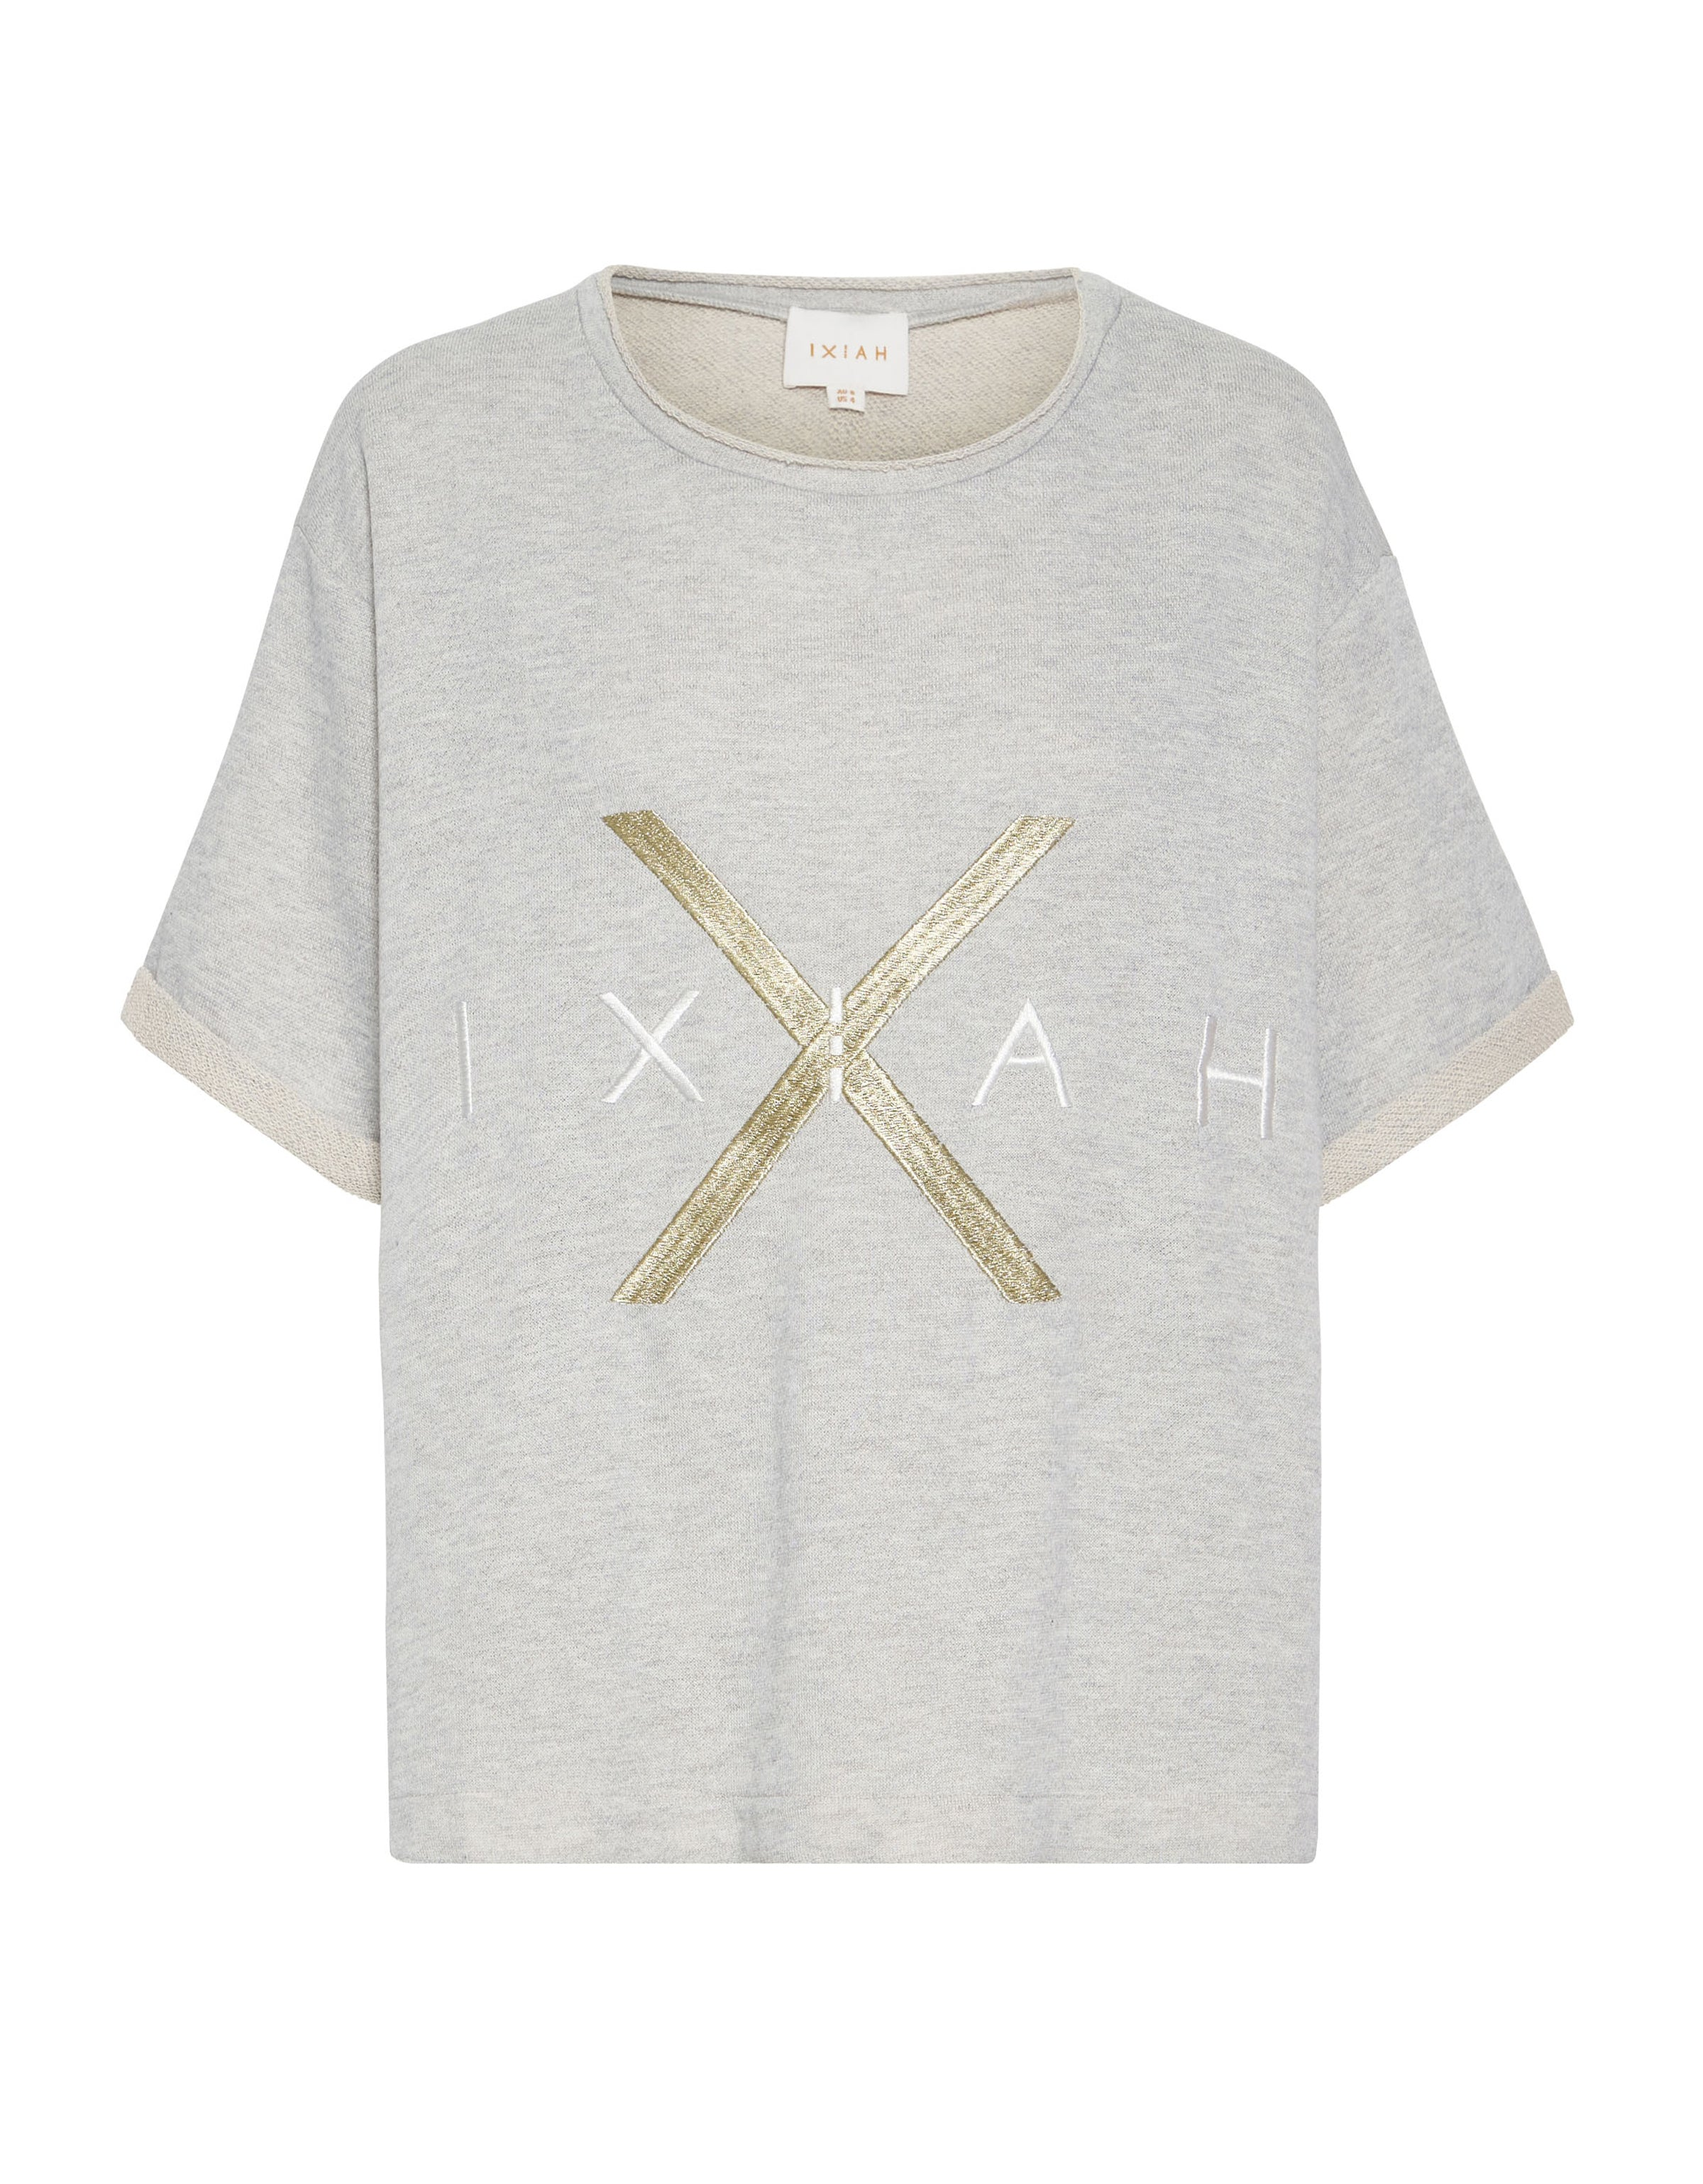 IXIAH - SIGNATURE T-SHIRT